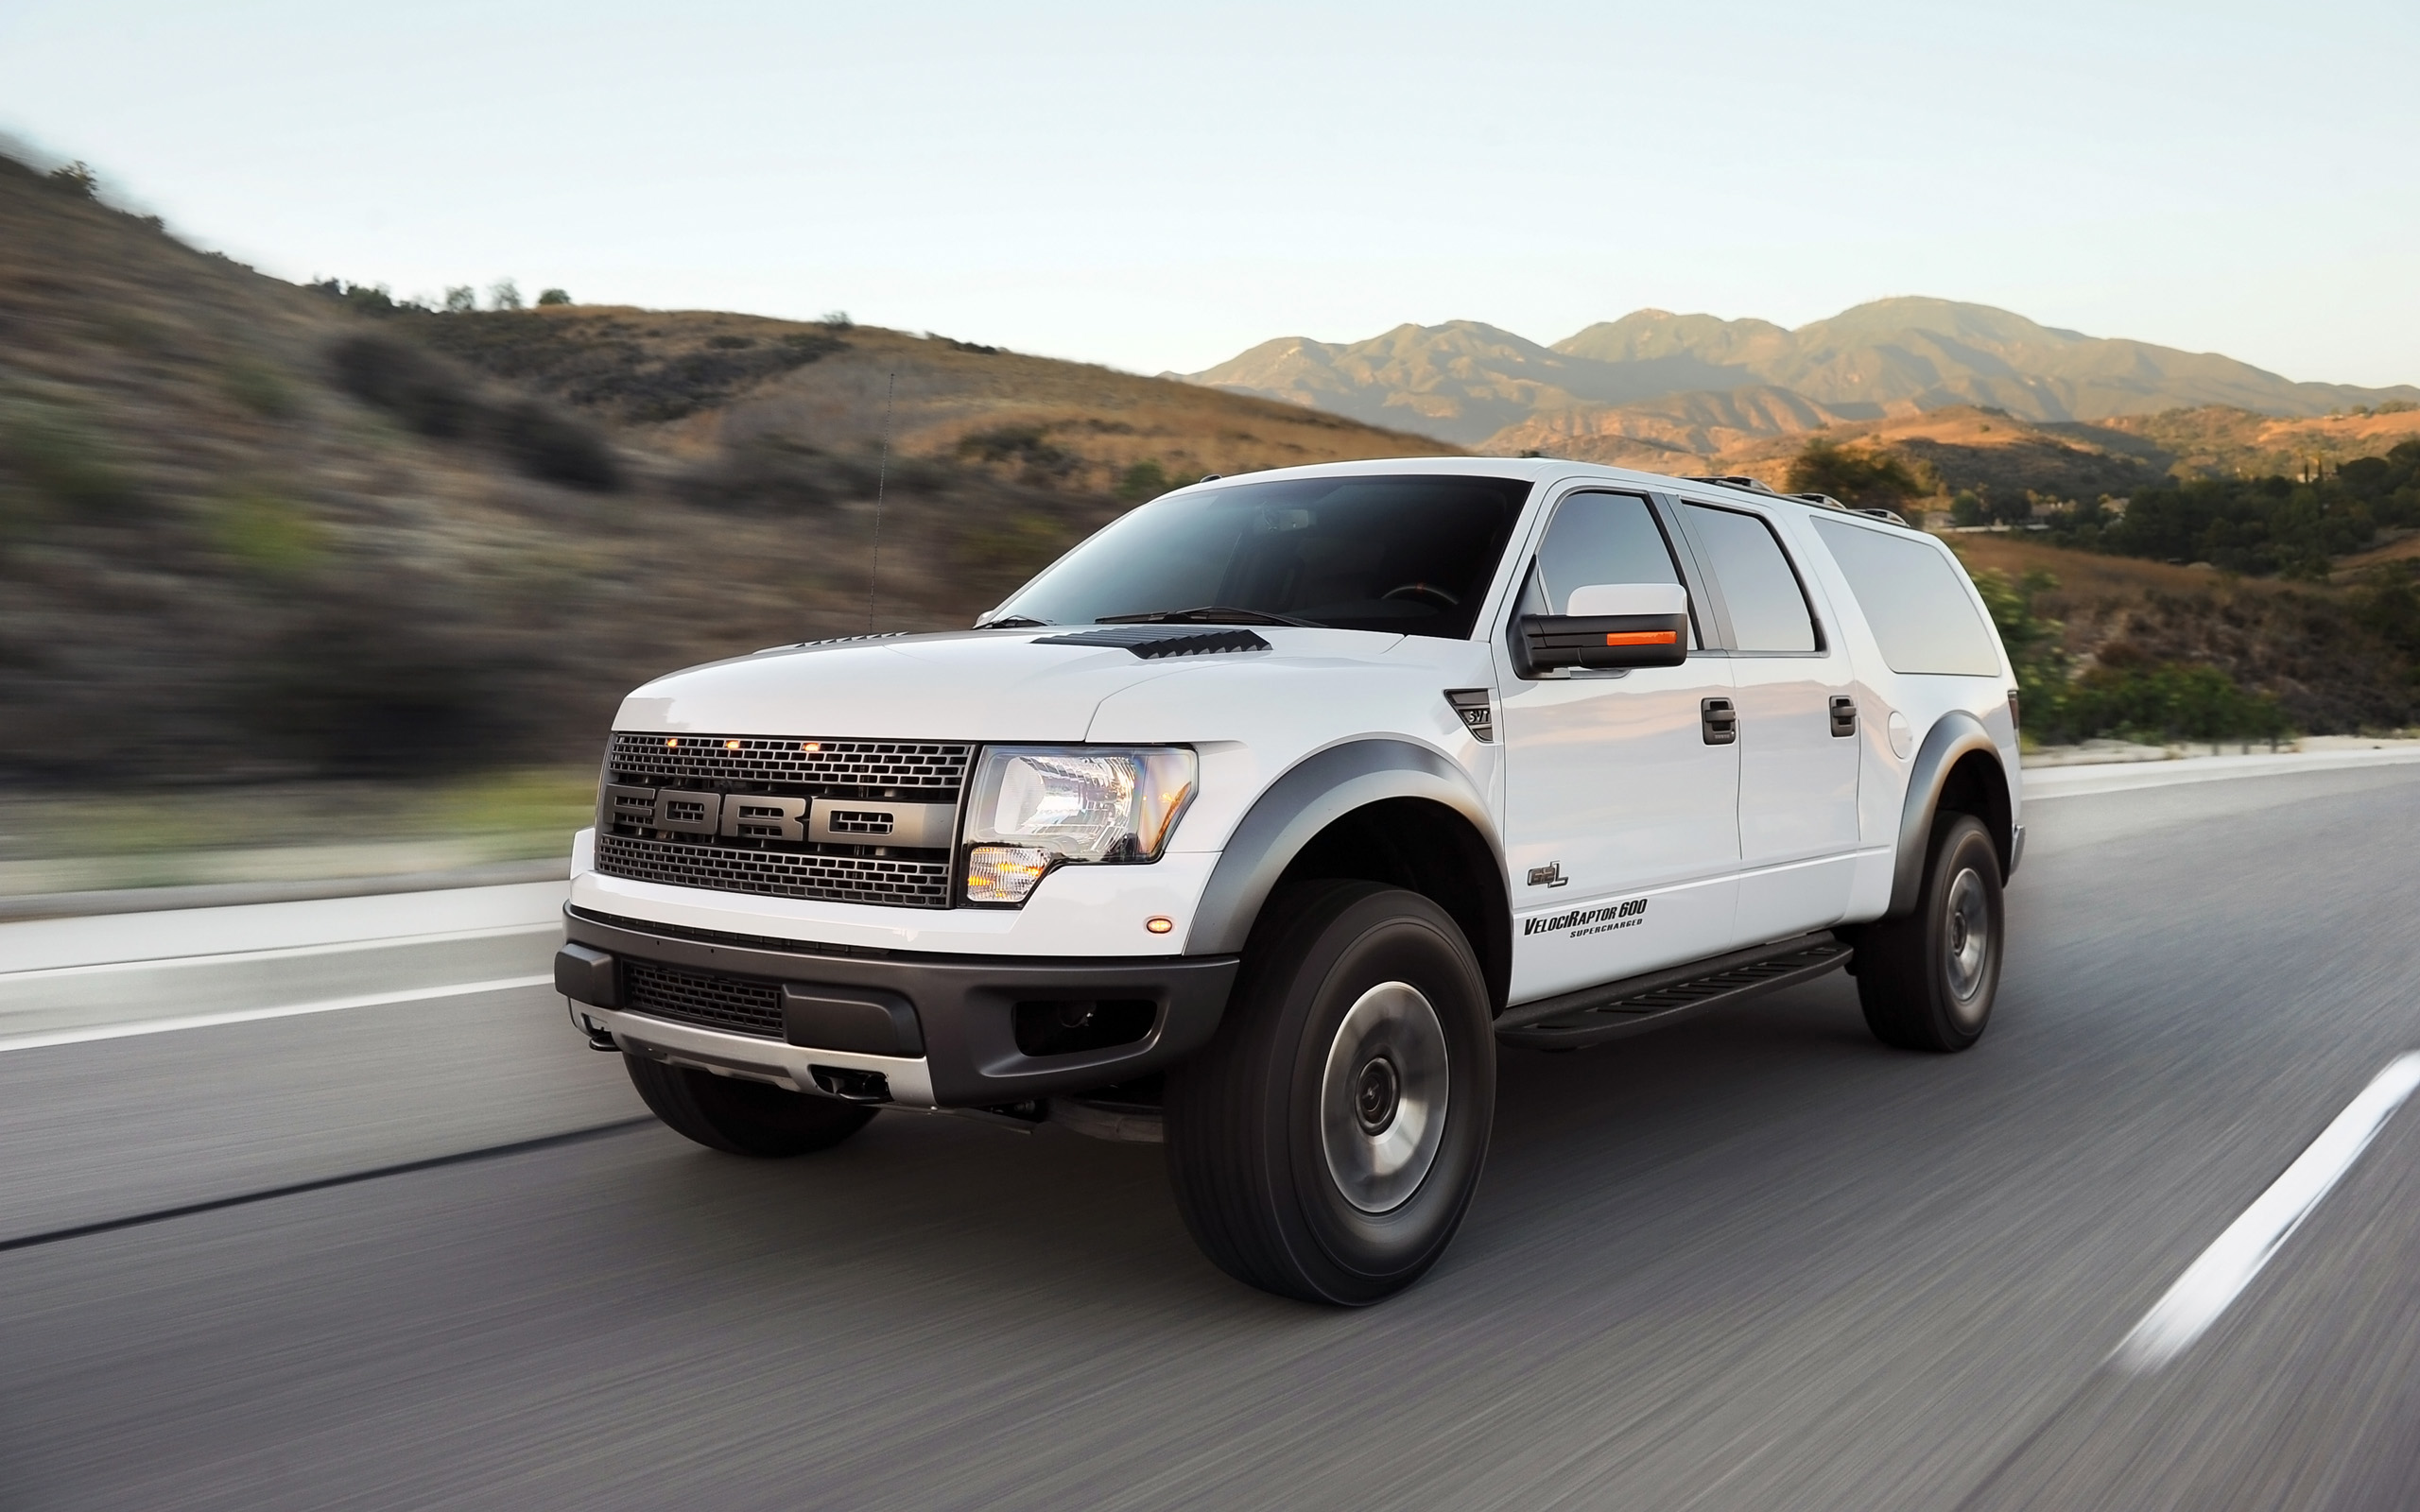 2013 Hennessey Ford Velociraptor SUV F-150 muscle d wallpaper   2560x1600   154379   WallpaperUP